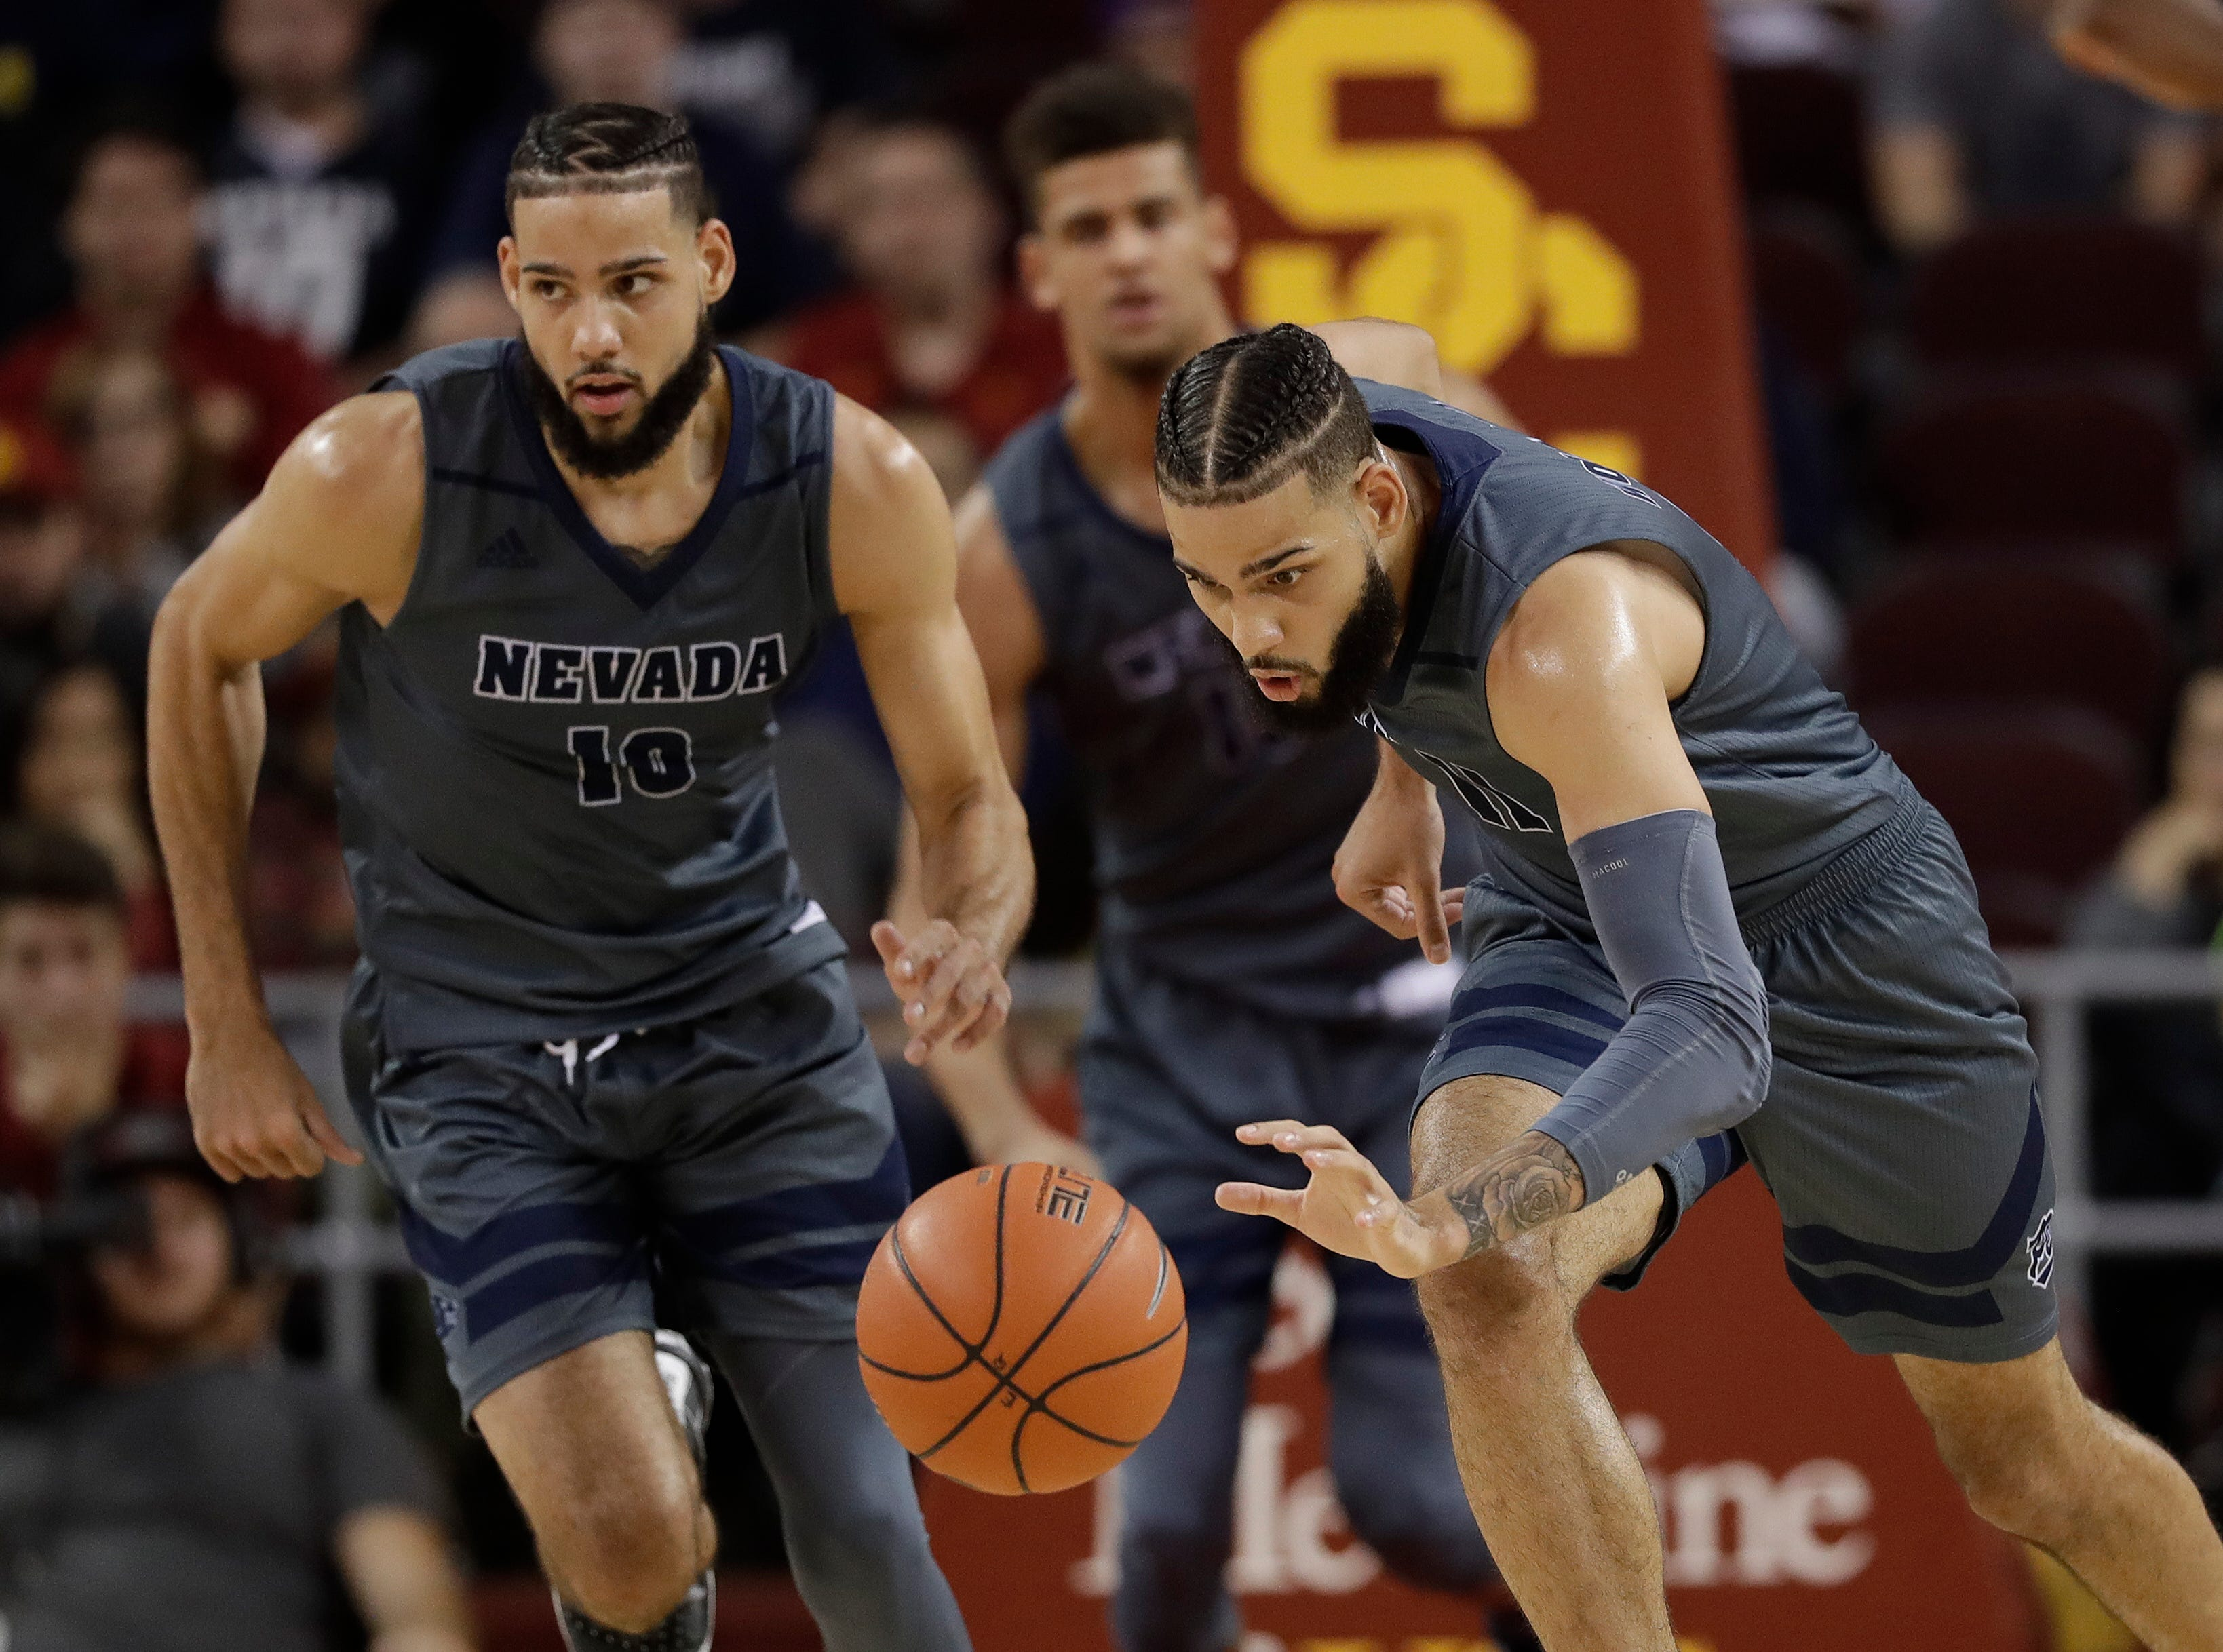 FILE - In this Dec. 1, 2018, file photo, Nevada forward Cody Martin, right, dribbles downcourt as his twin brother Caleb Martin, left, trails during the second half of an NCAA college basketball game against Southern California in Los Angeles. Florida's Jalen Hudson and the Martins will share the court in the opening round of the NCAA Tournament in Des Moines, Iowa. (AP Photo/Marcio Jose Sanchez, File)